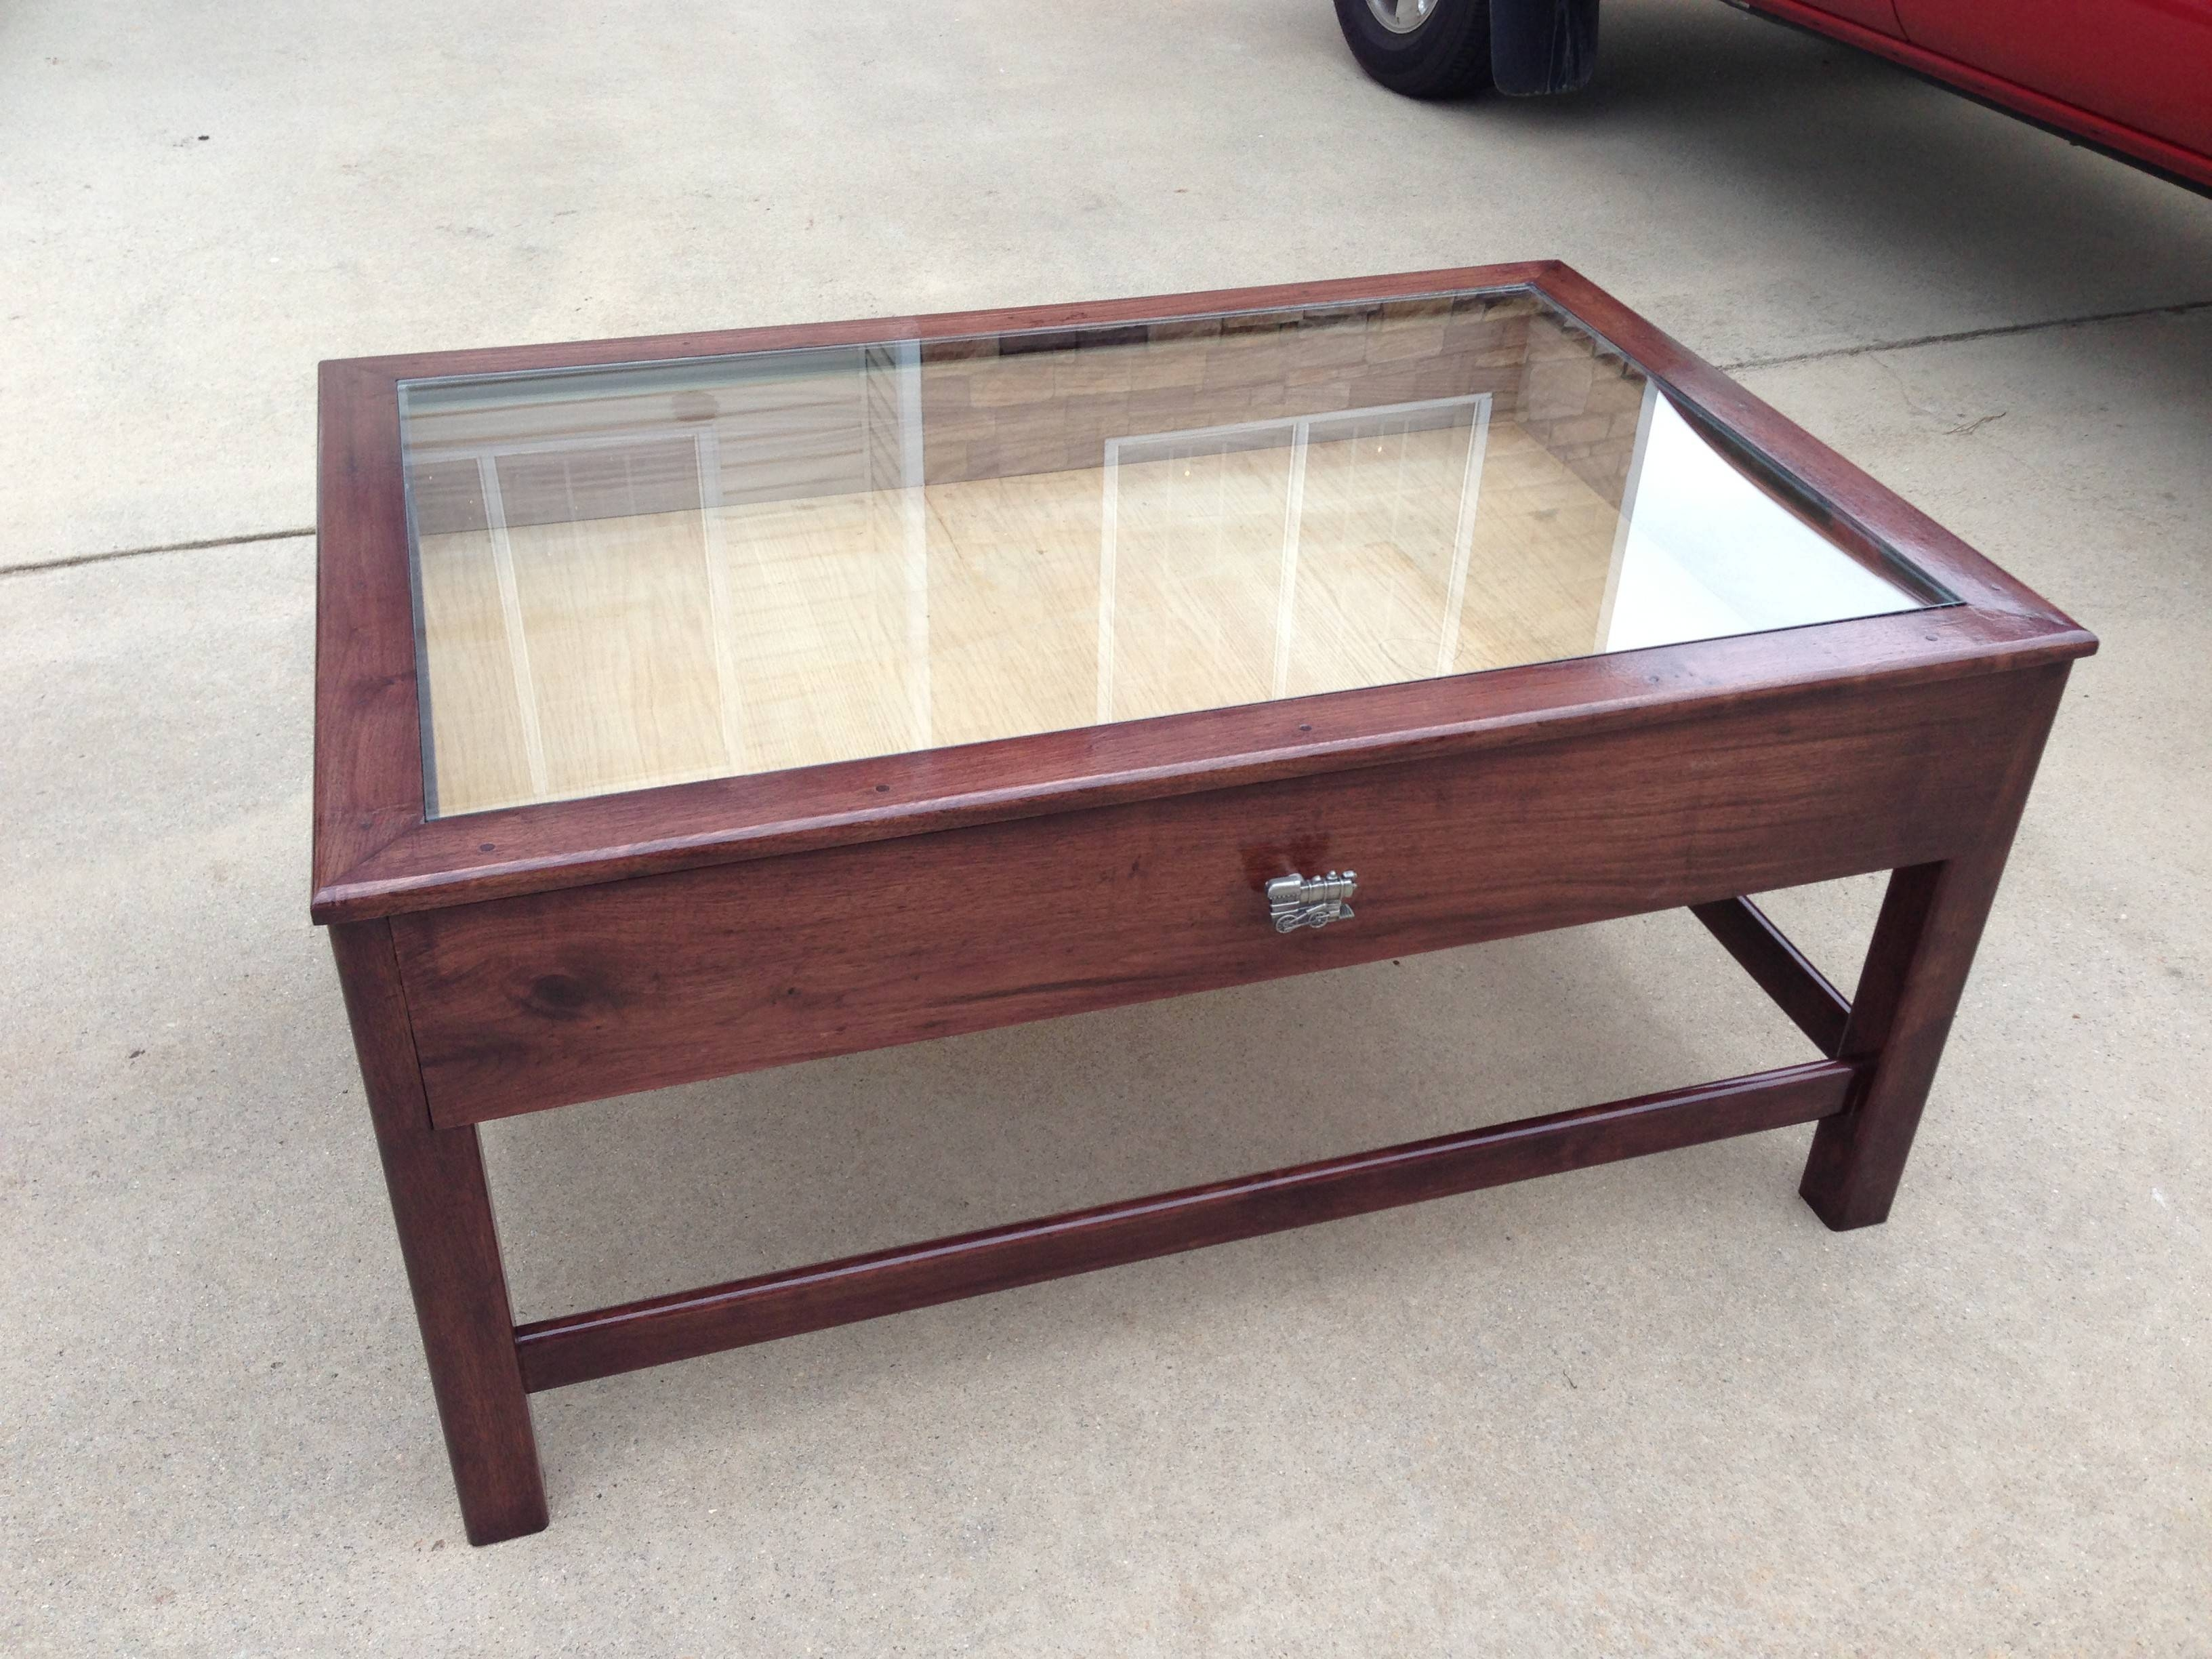 Coffee Table With Glass Top Storage Interior Home Design - Jericho with regard to Coffee Tables With Box Storage (Image 4 of 30)